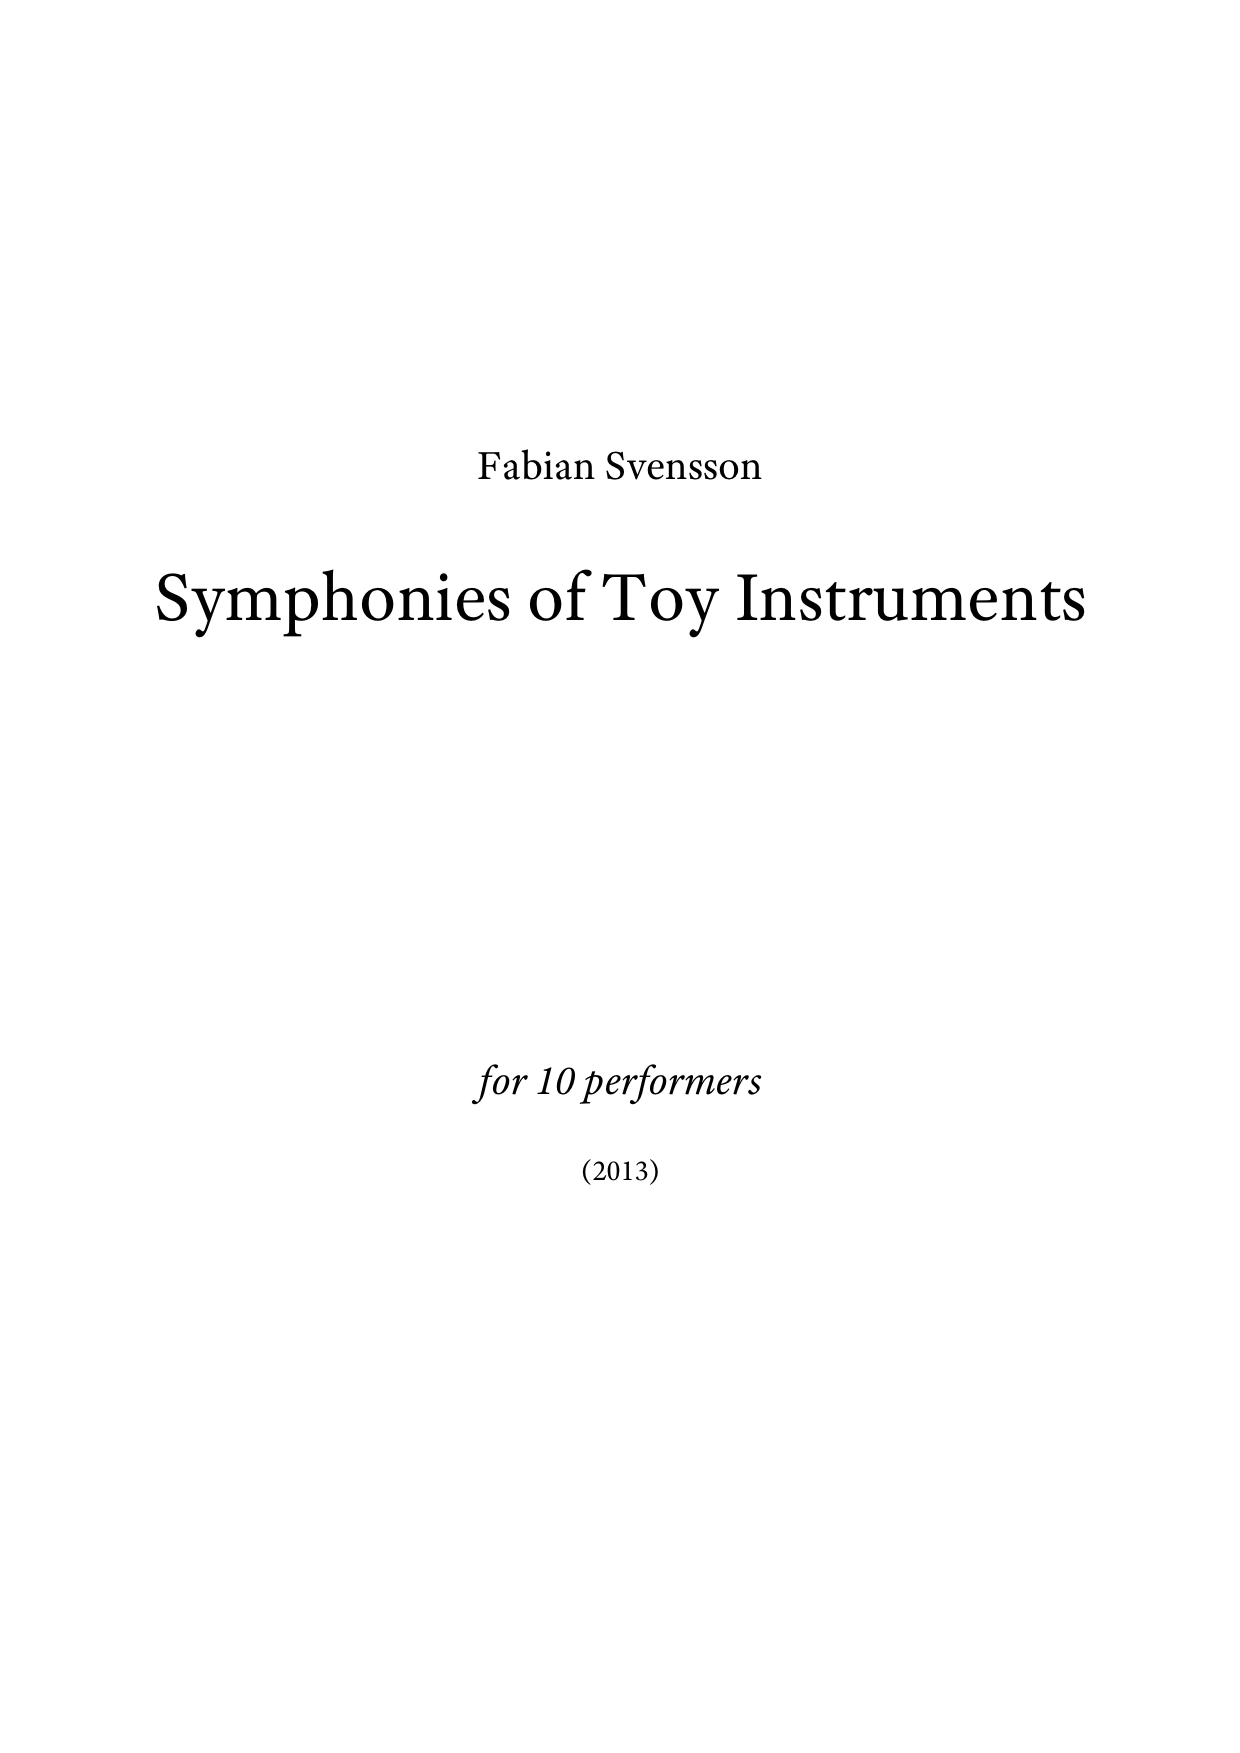 Symphonies of Toy Instruments A4 z 2 1 173